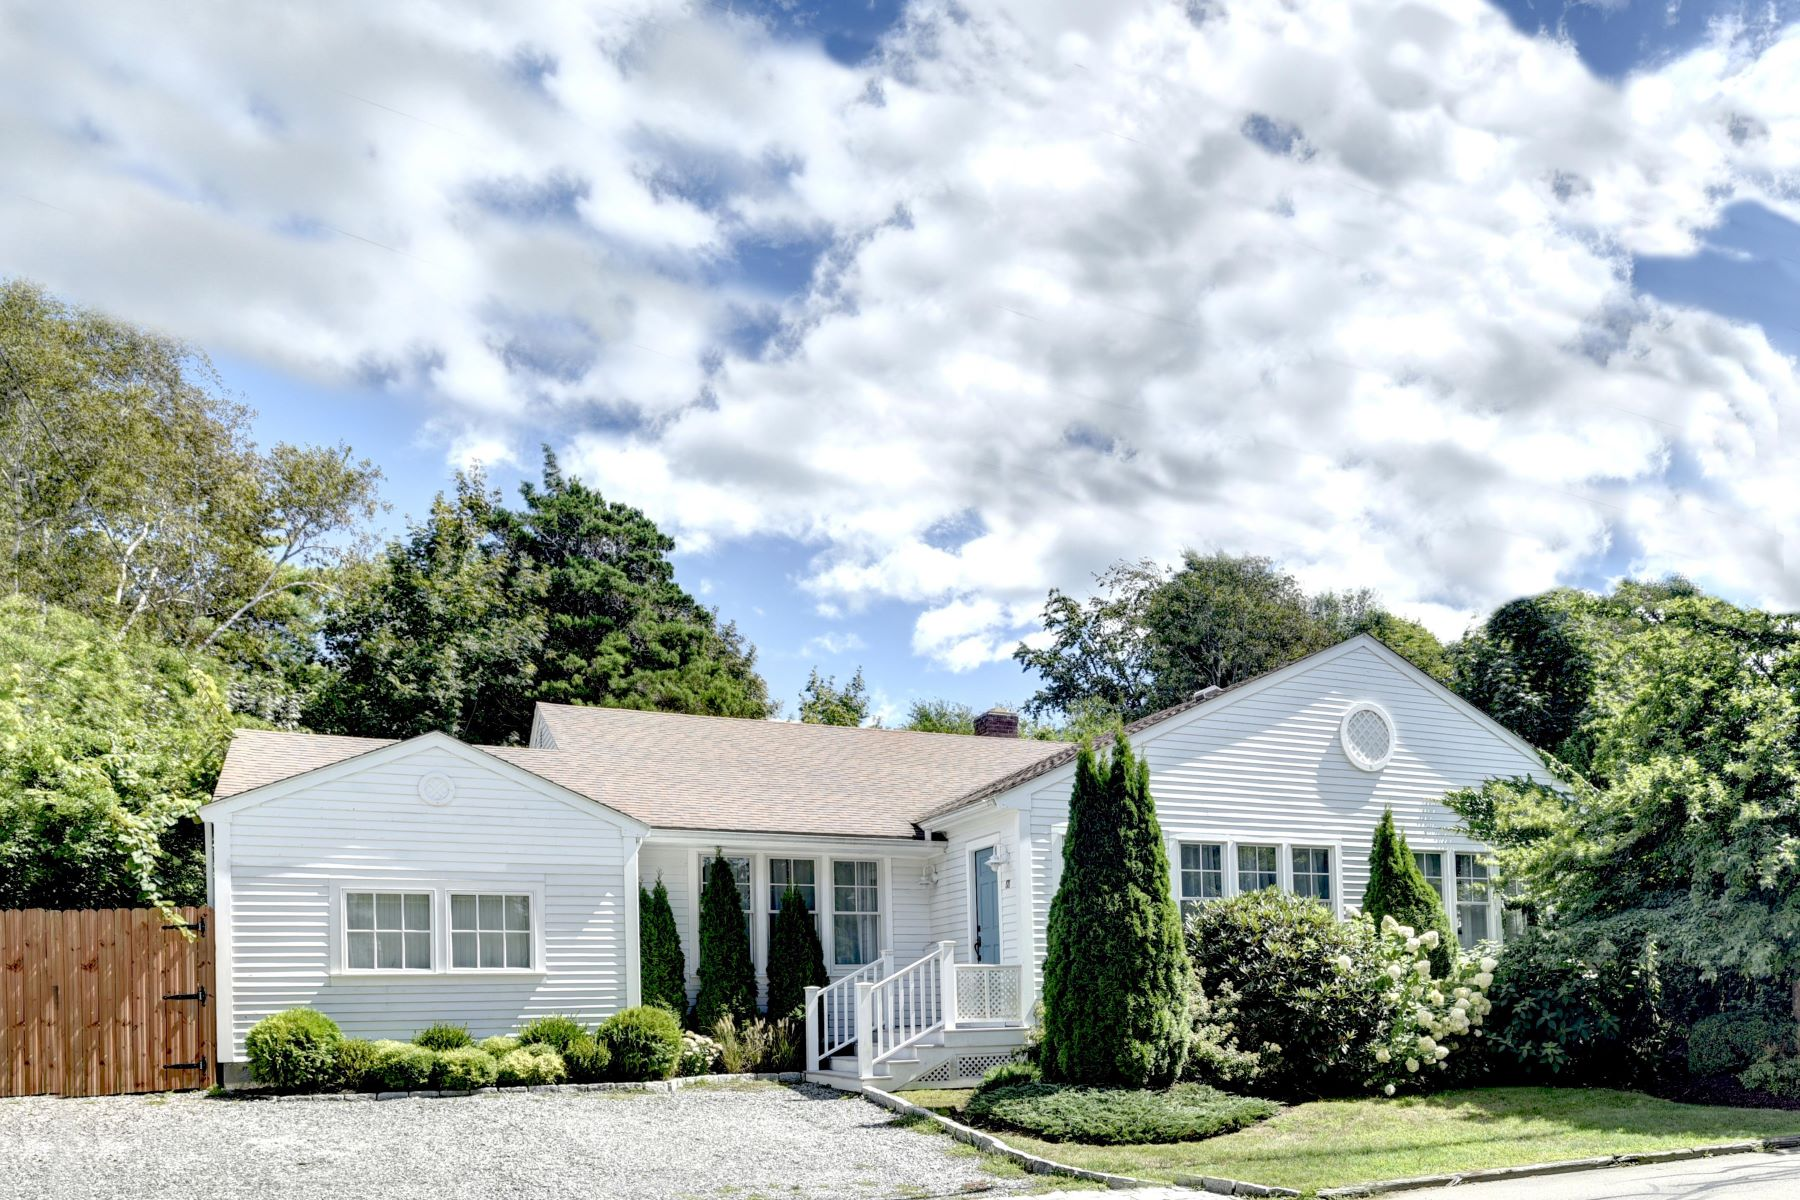 Single Family Homes for Sale at Delightful Newport Residence 88 Coggeshall Avenue Newport, Rhode Island 02840 United States